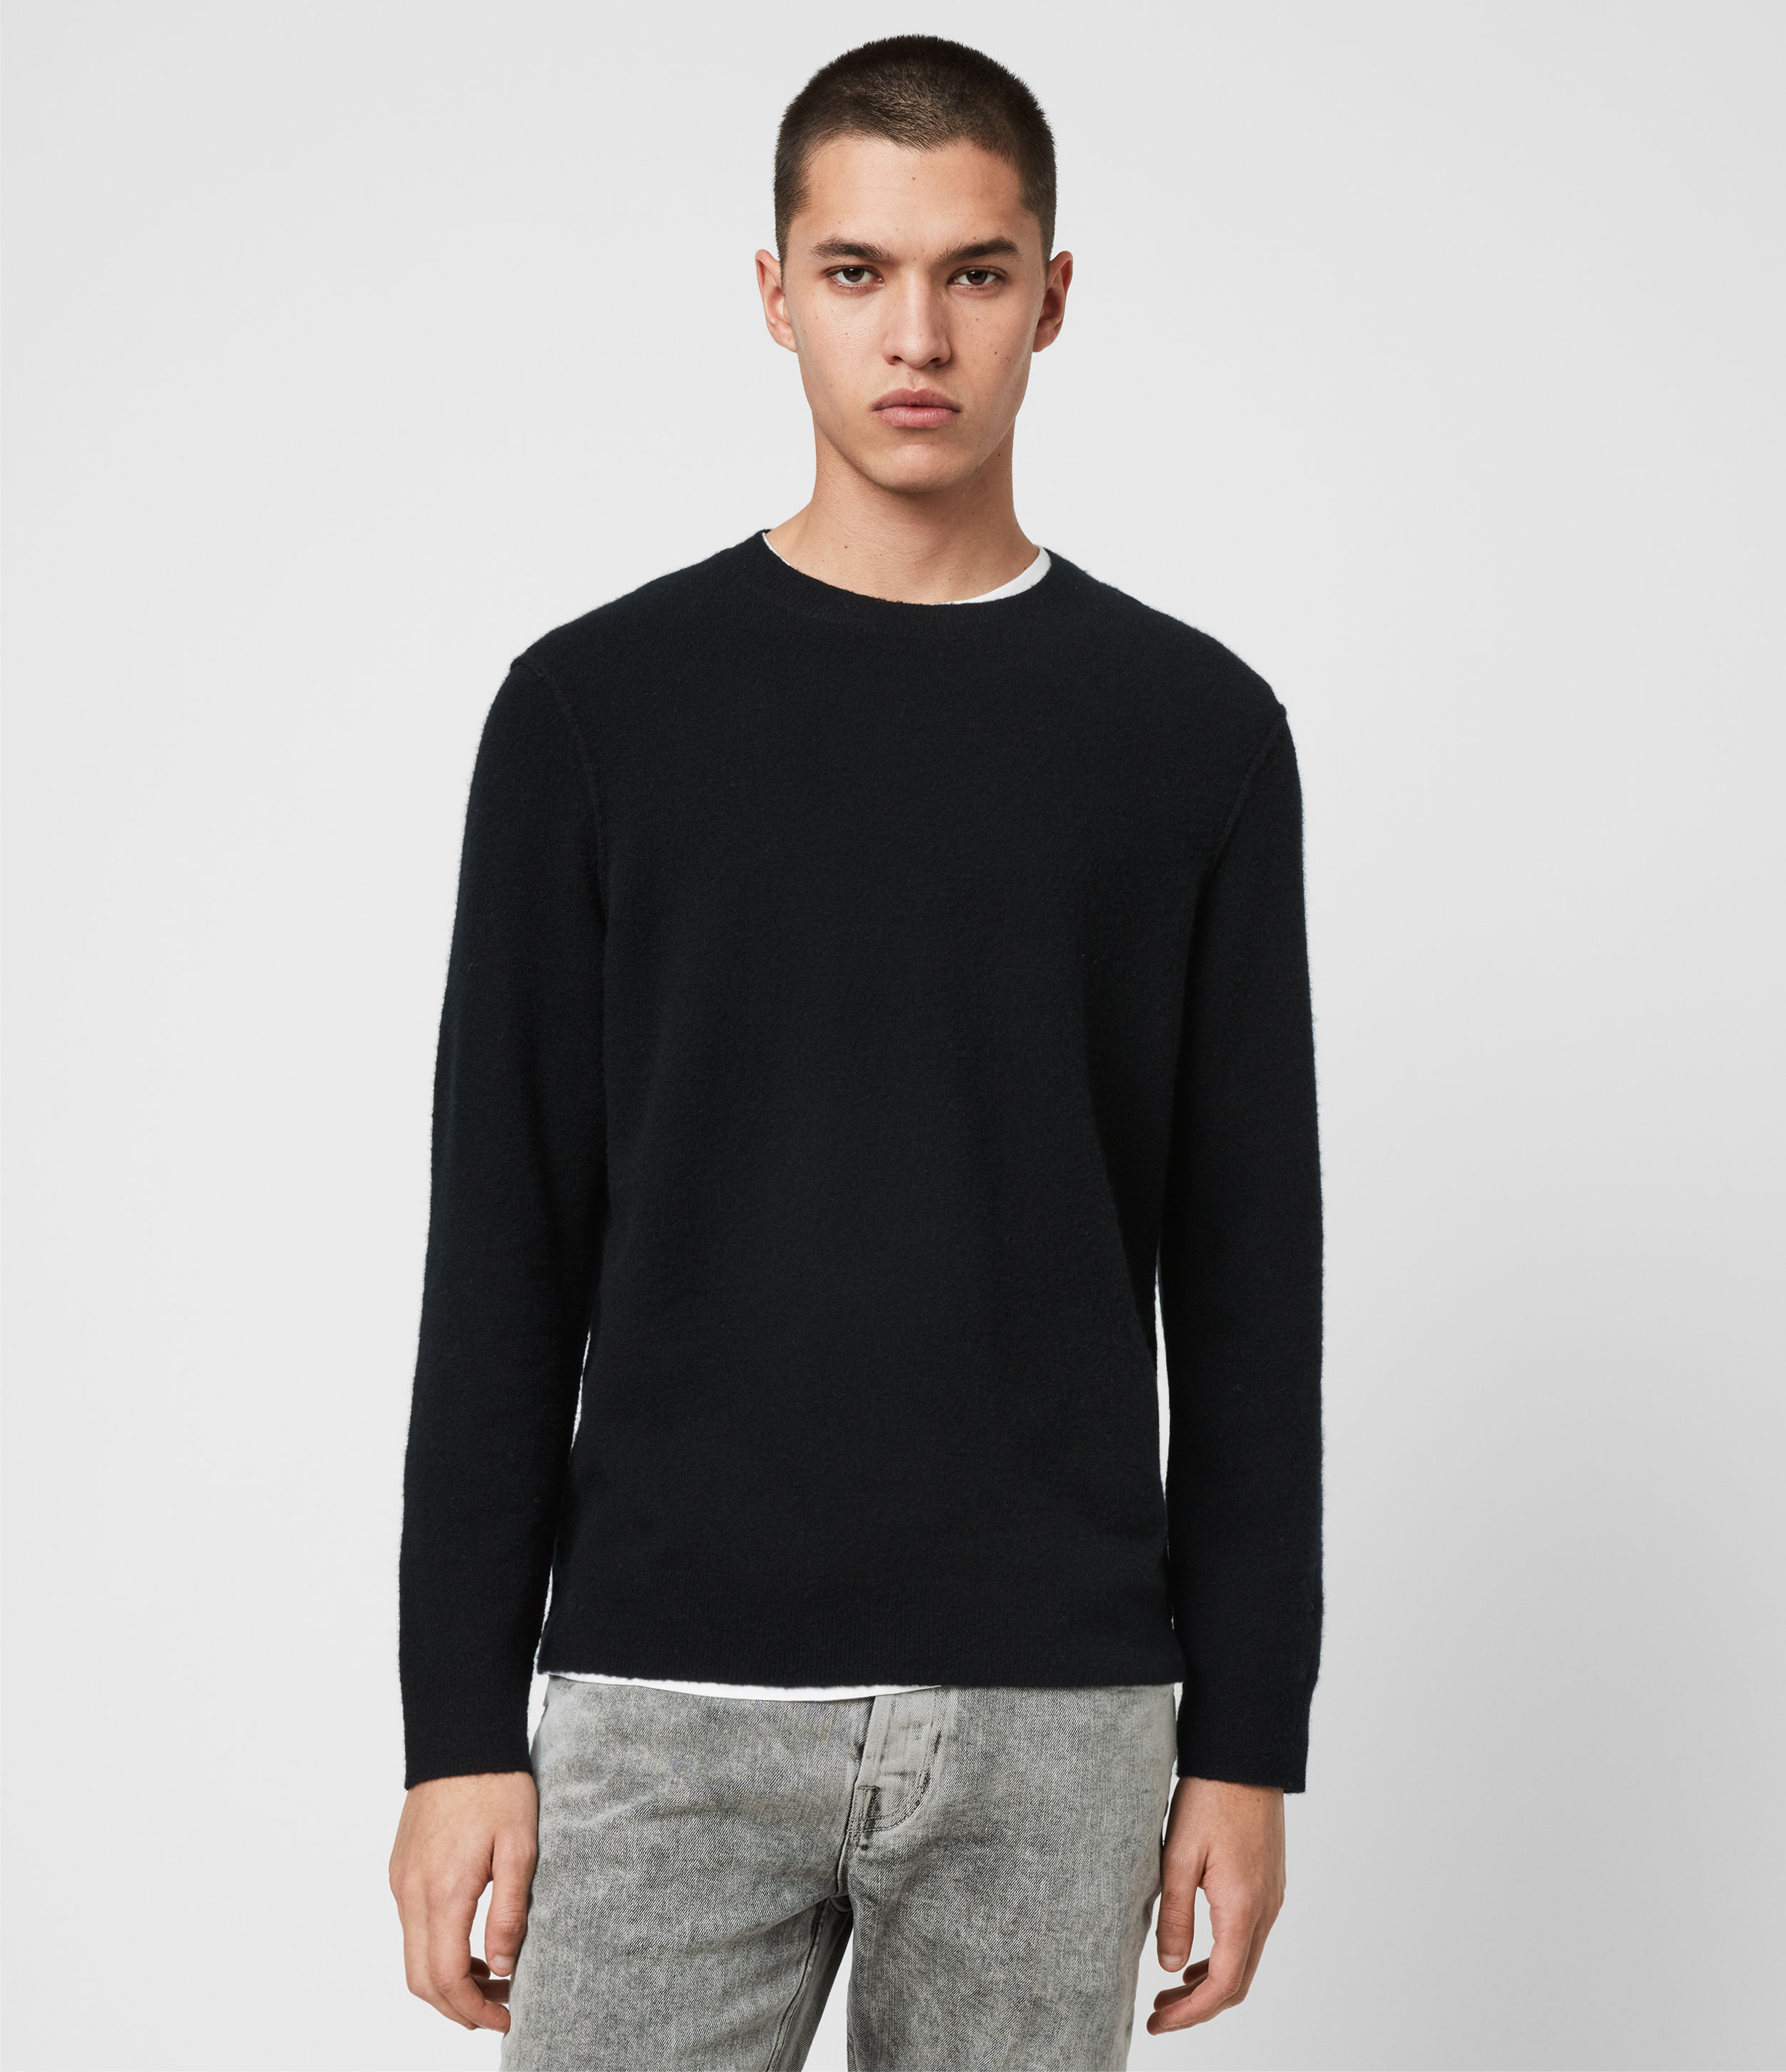 AllSaints Men's Wool Relaxed Fit Austell Crew Cashmere Blend Jumper, Black, Size: XS